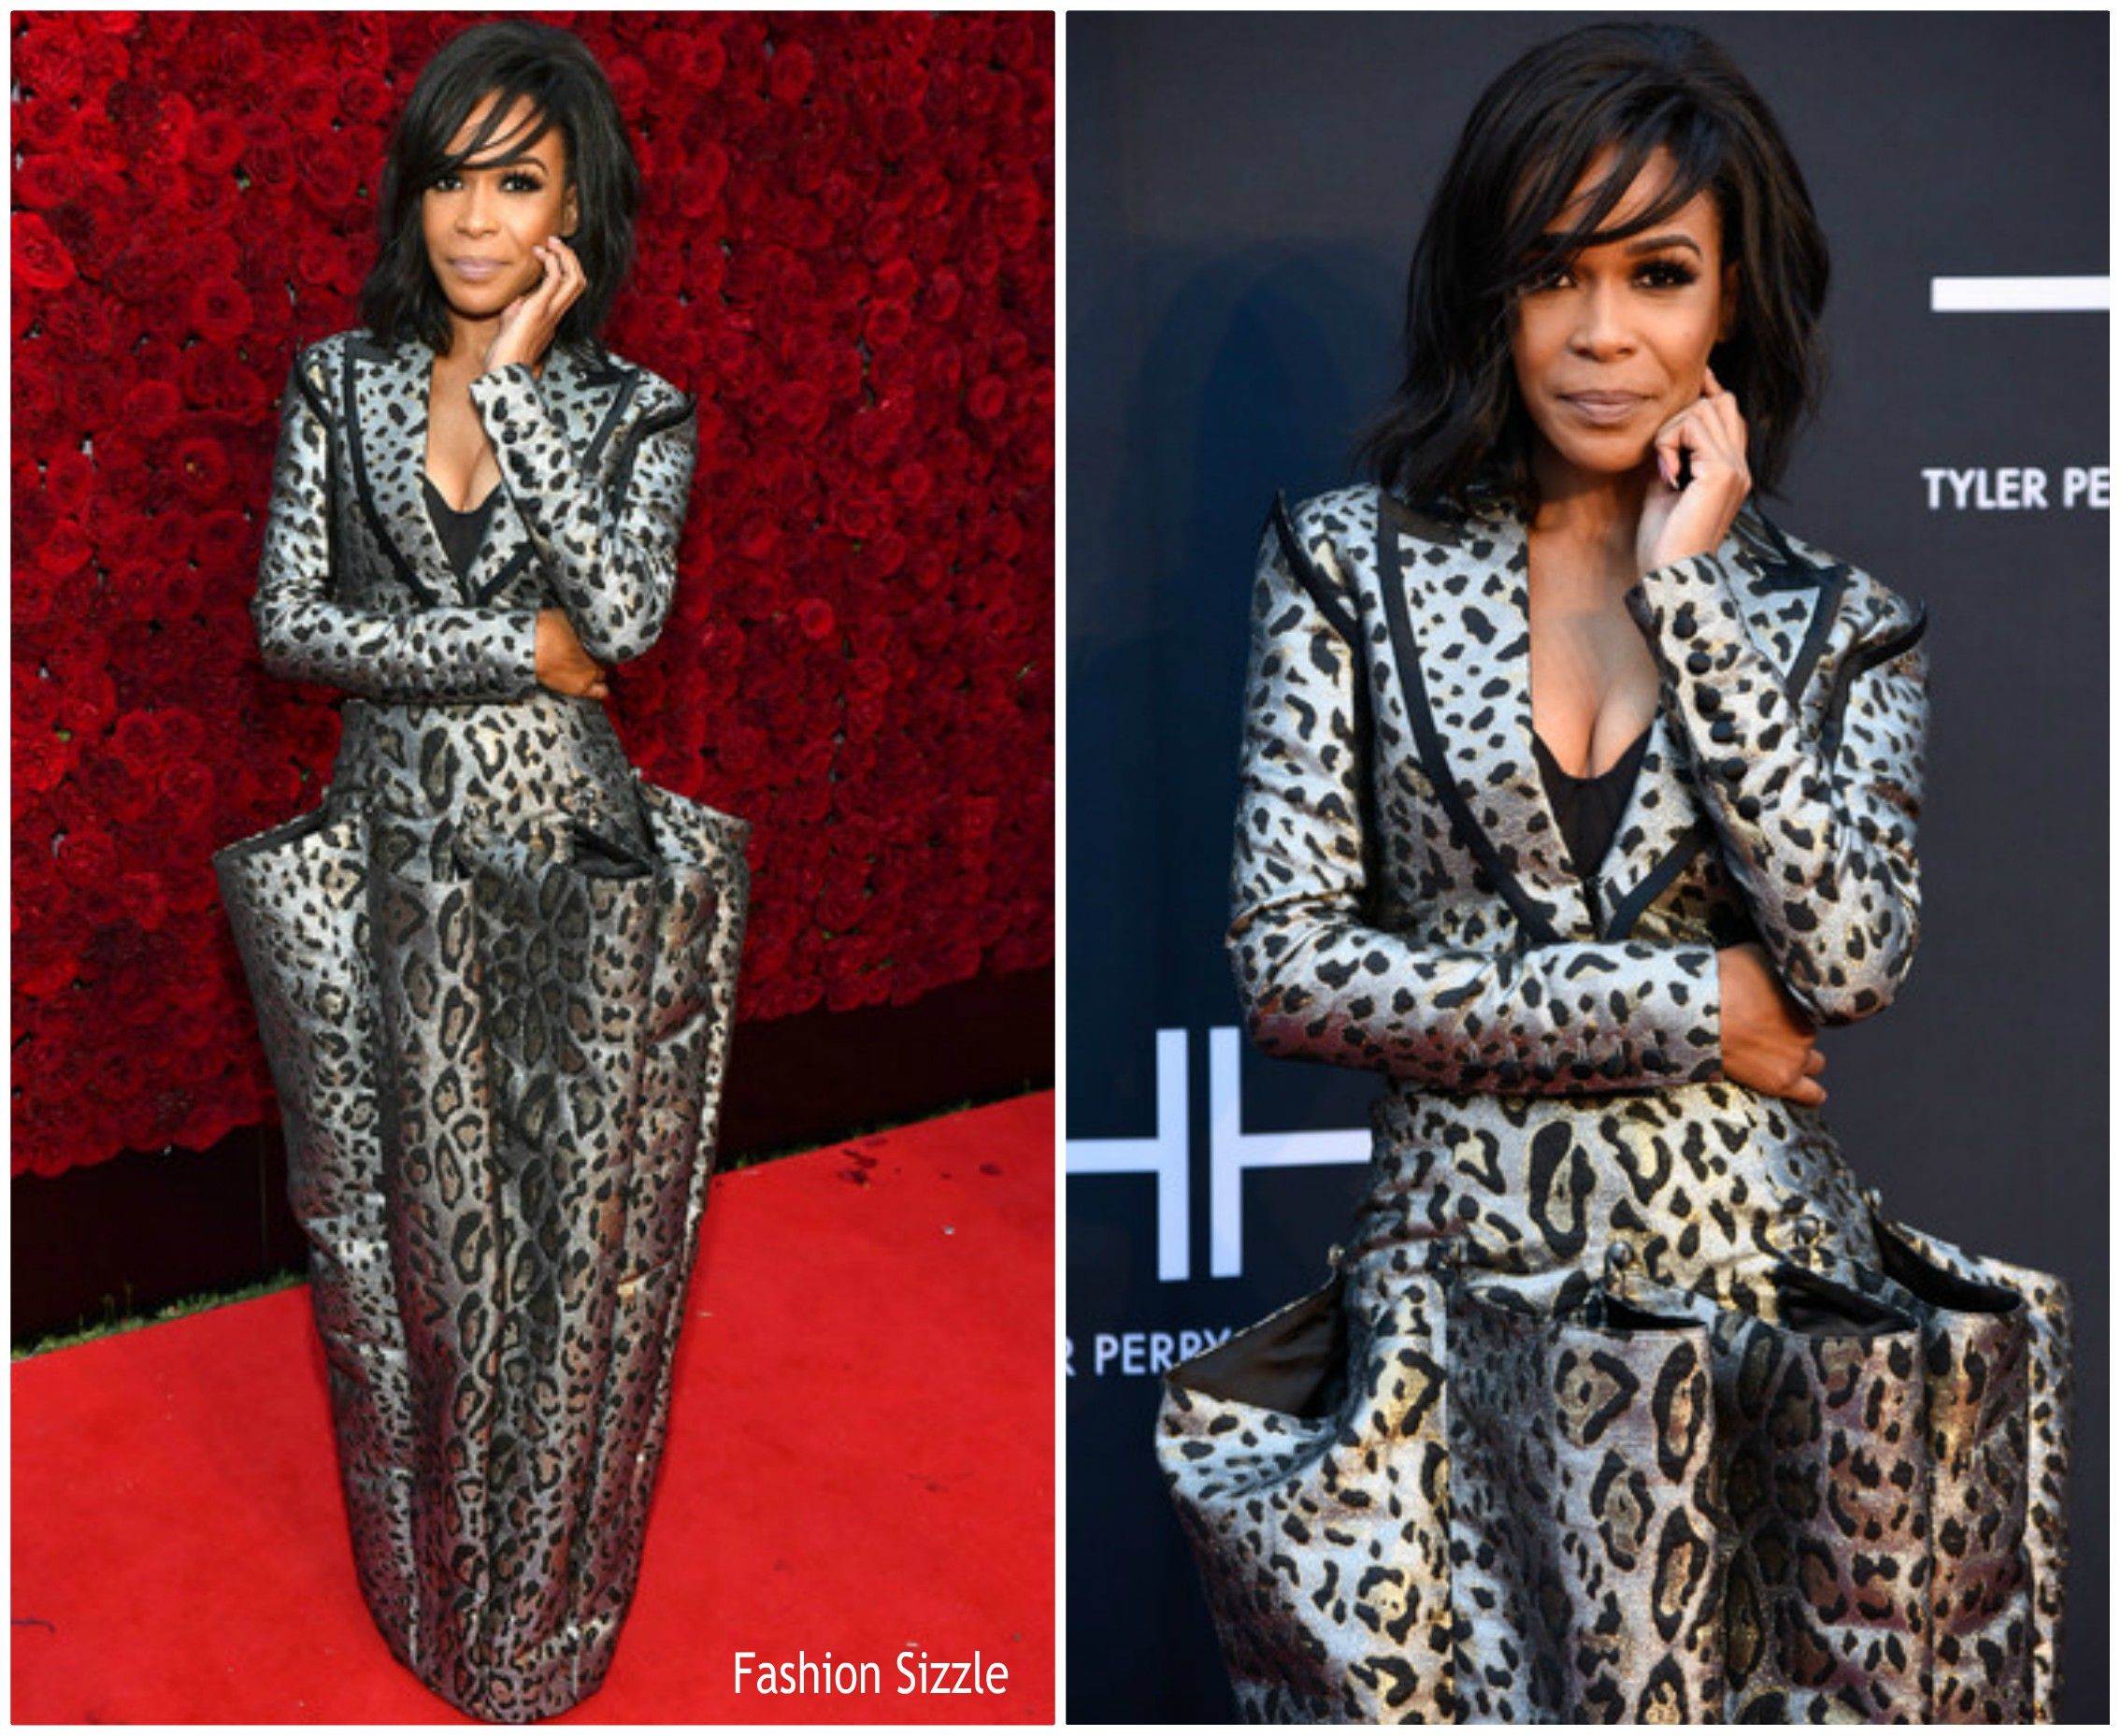 michelle-williams-in-malan-breton-tyler-perry-studios-grand-opening-gala-in-atlanta